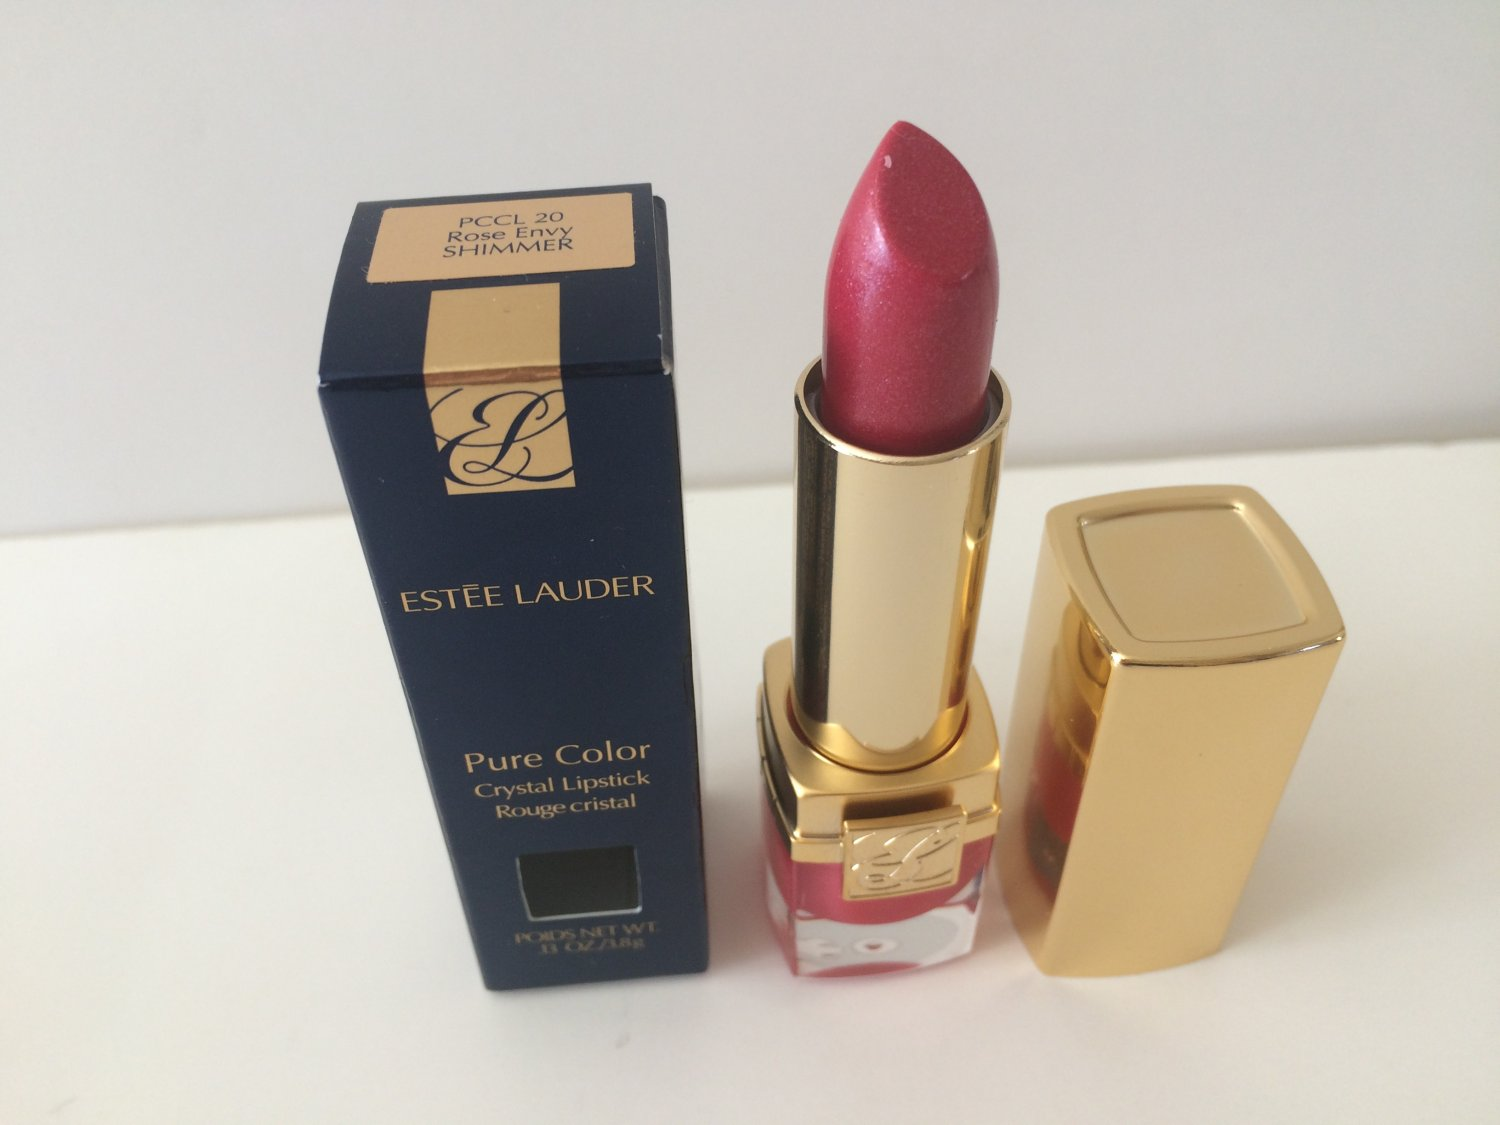 Estee Lauder Pure Color Crystal Lipstick - 20 Rose Envy Shimmer